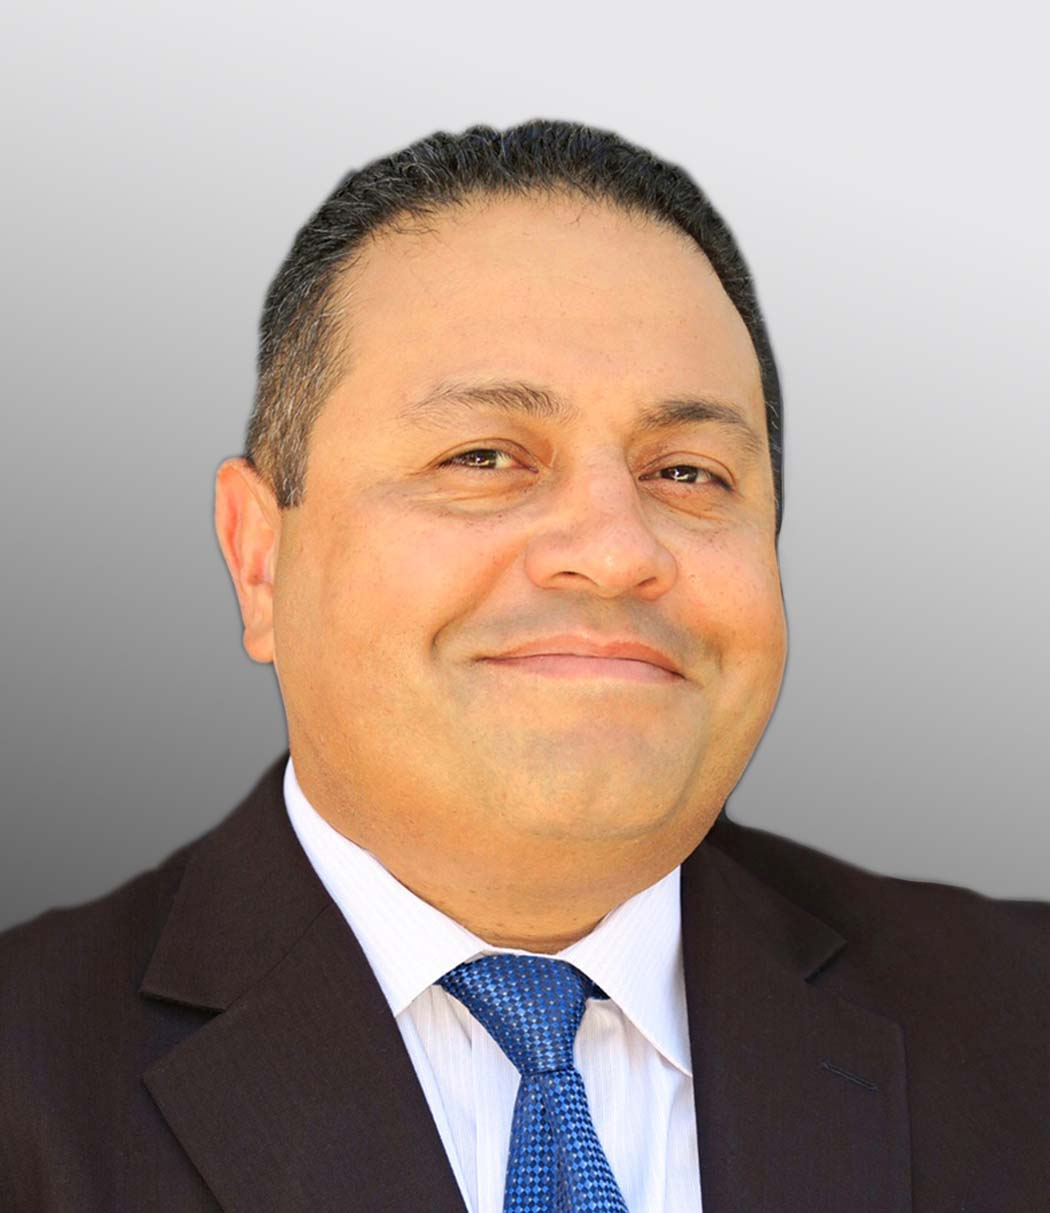 Earl Bolanos recently appointed as Regional Manager at ONSSI